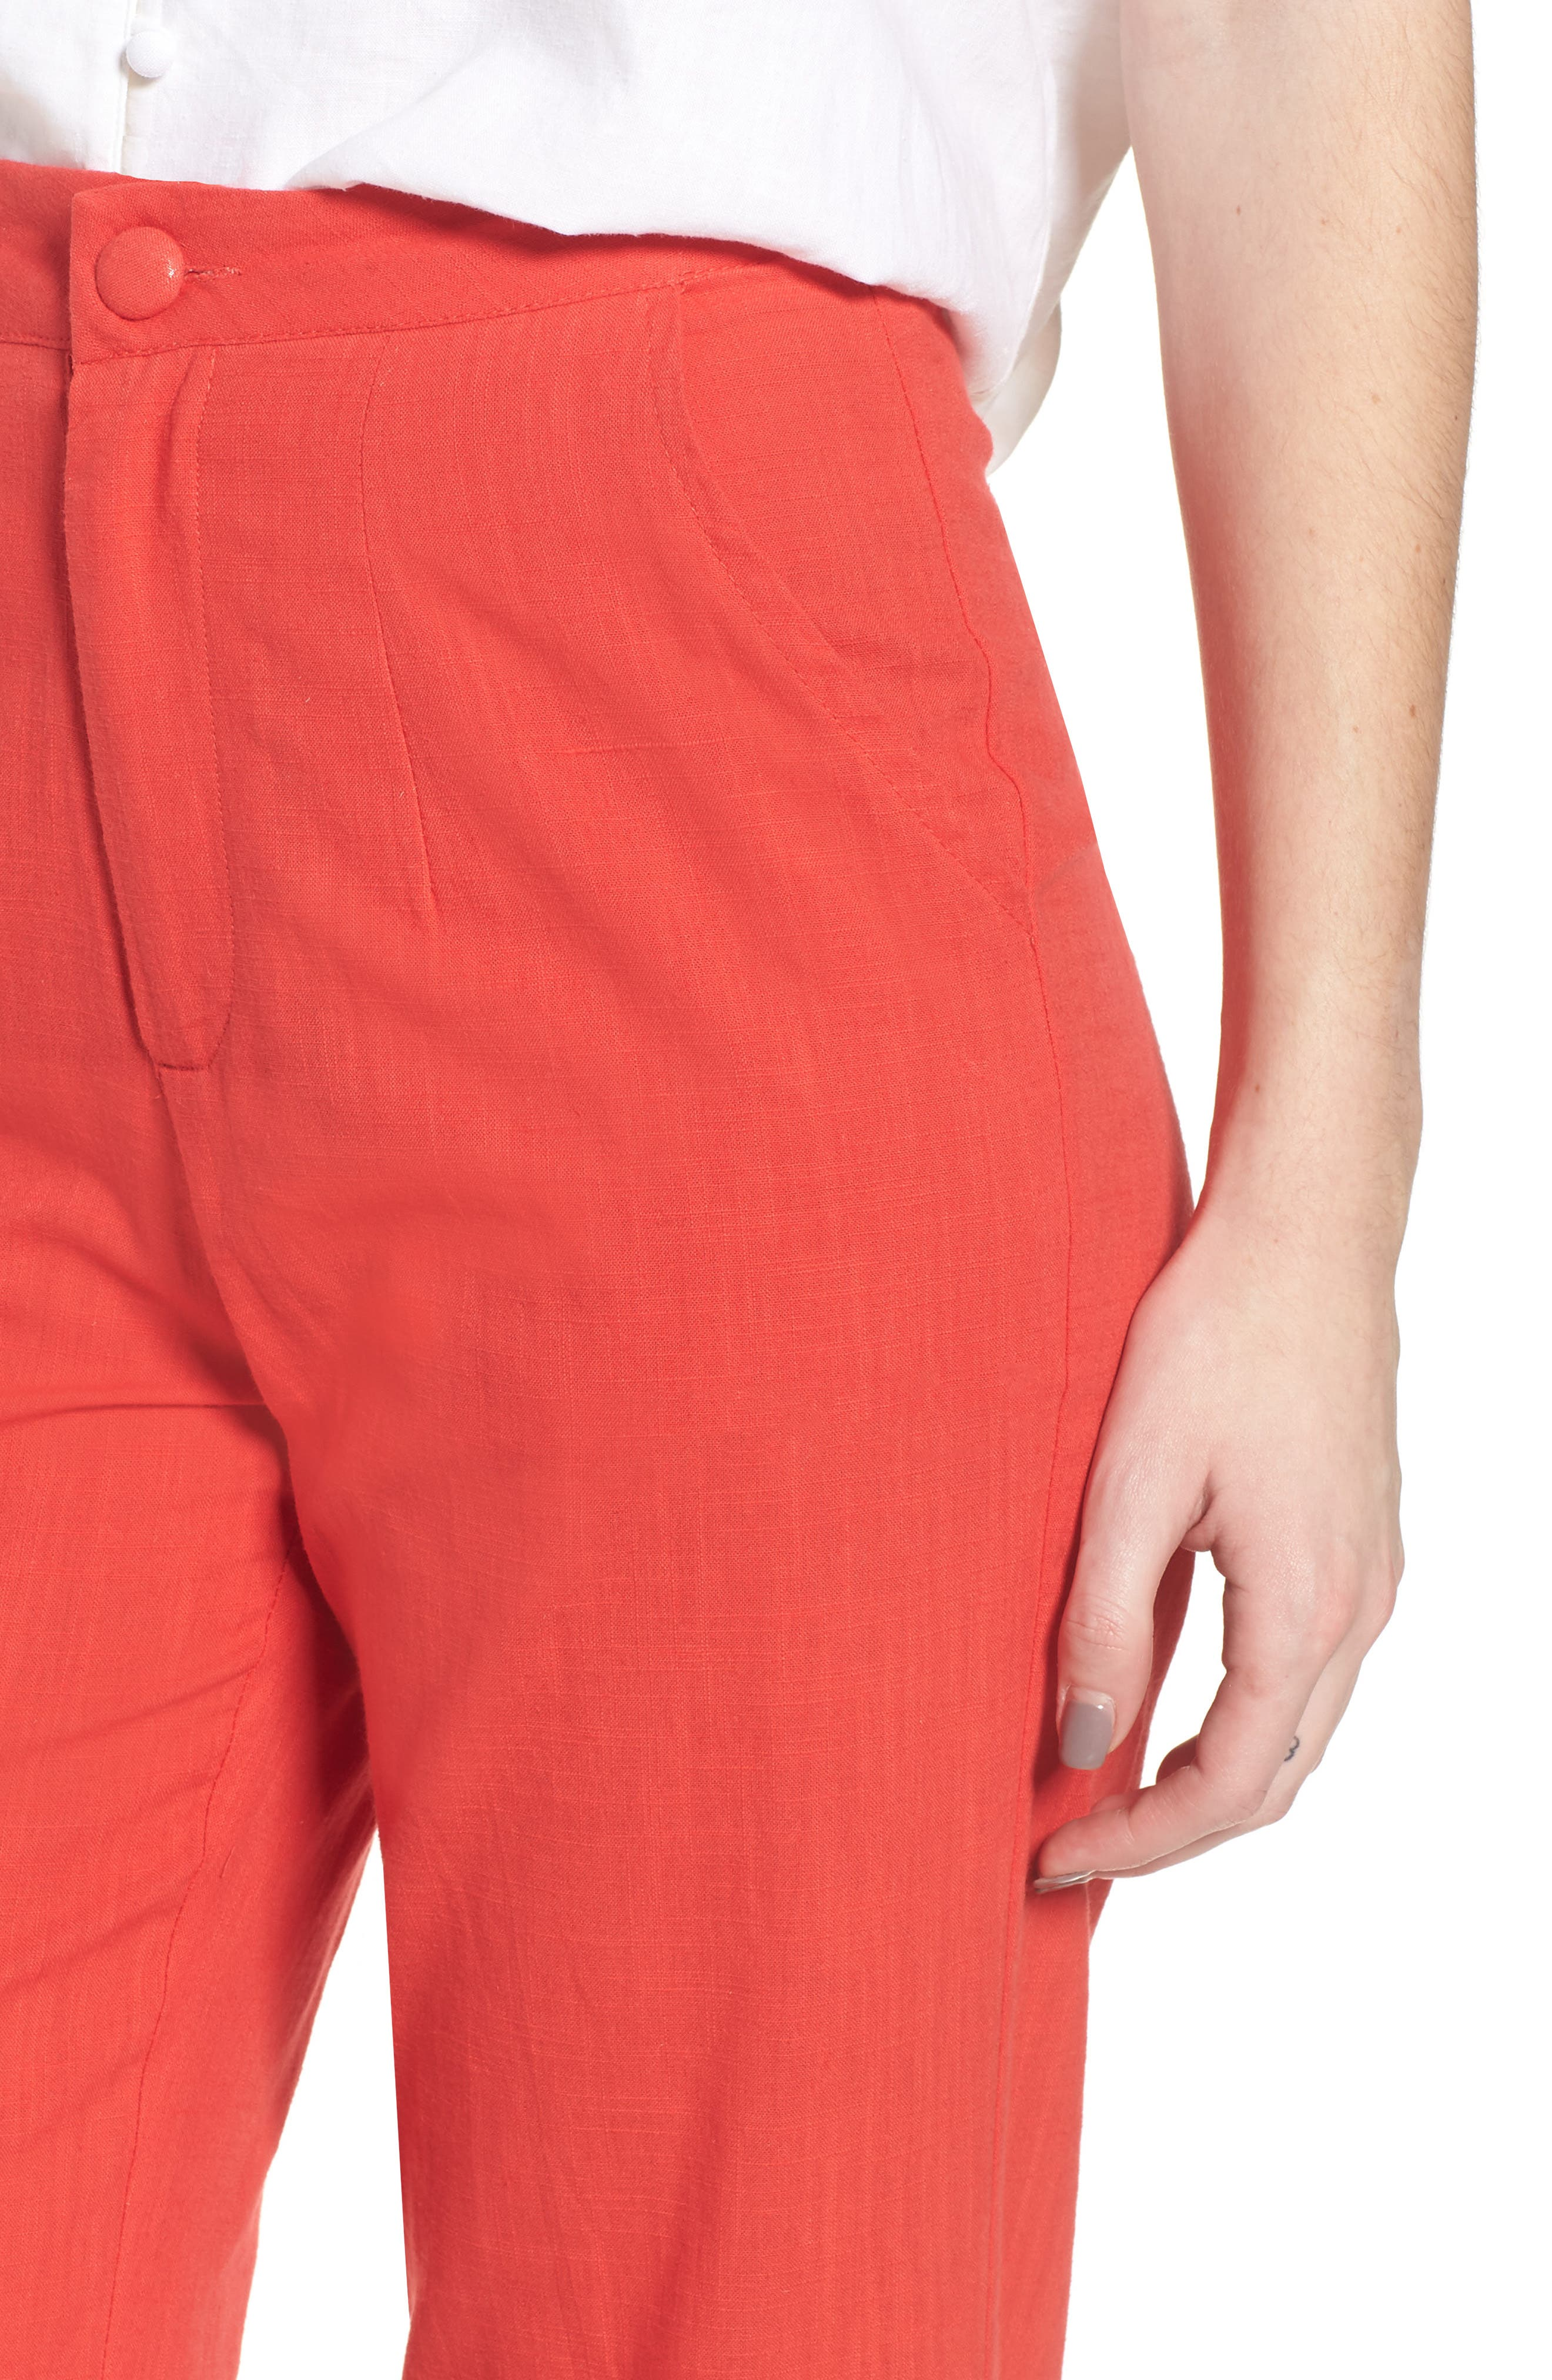 Femme Fatale High Waist Pants,                             Alternate thumbnail 4, color,